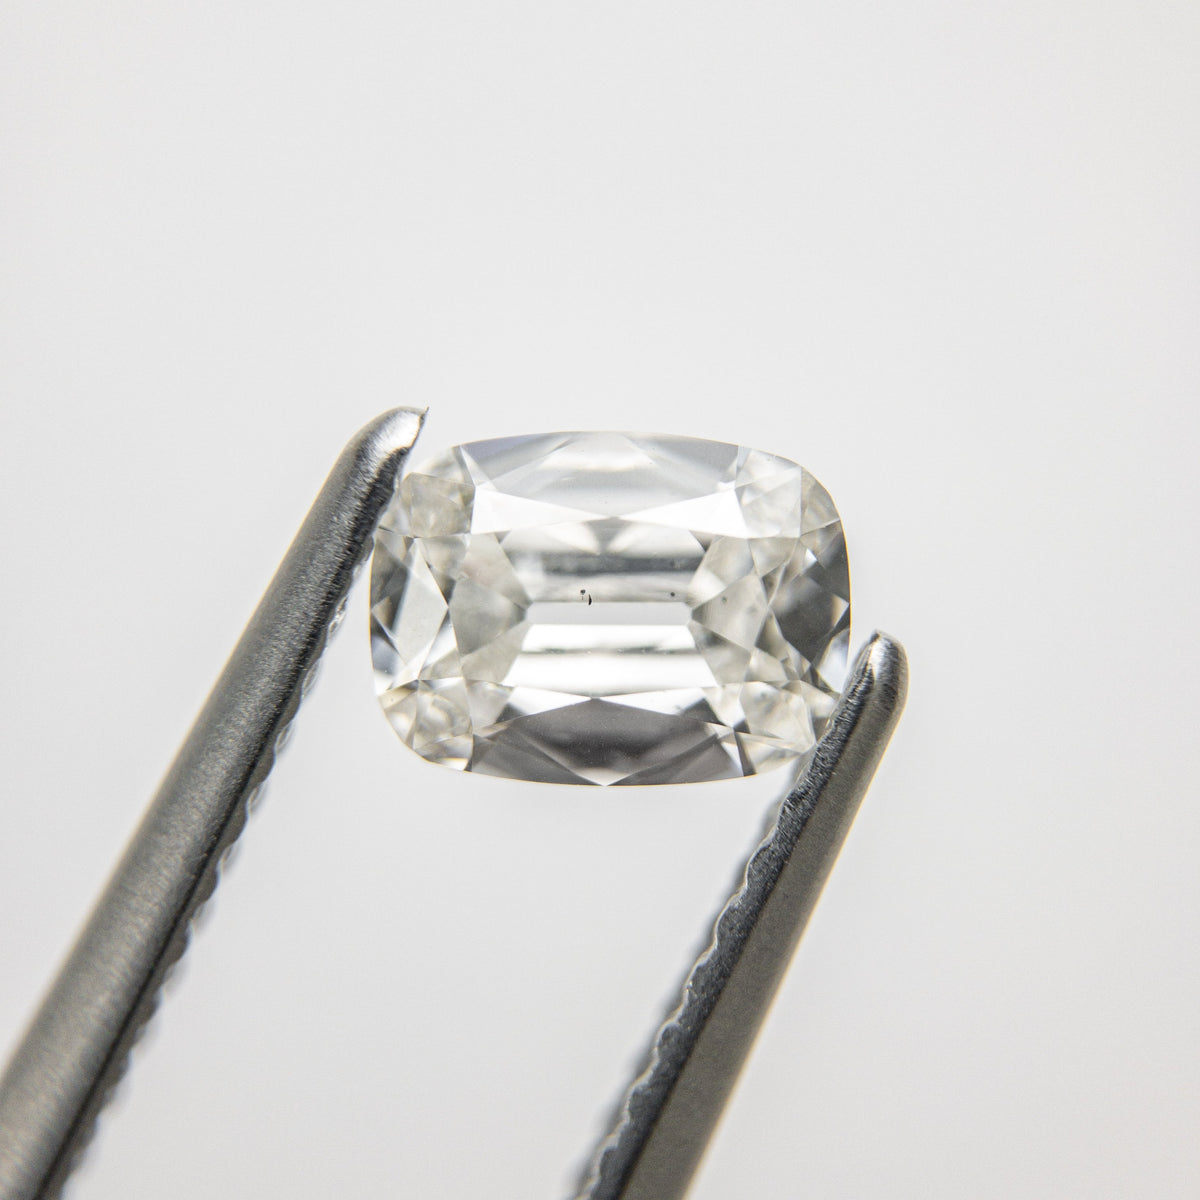 0.73ct 6.39x4.77x2.64mm SI1 H/I Modern Old Mine Cut 18214-02